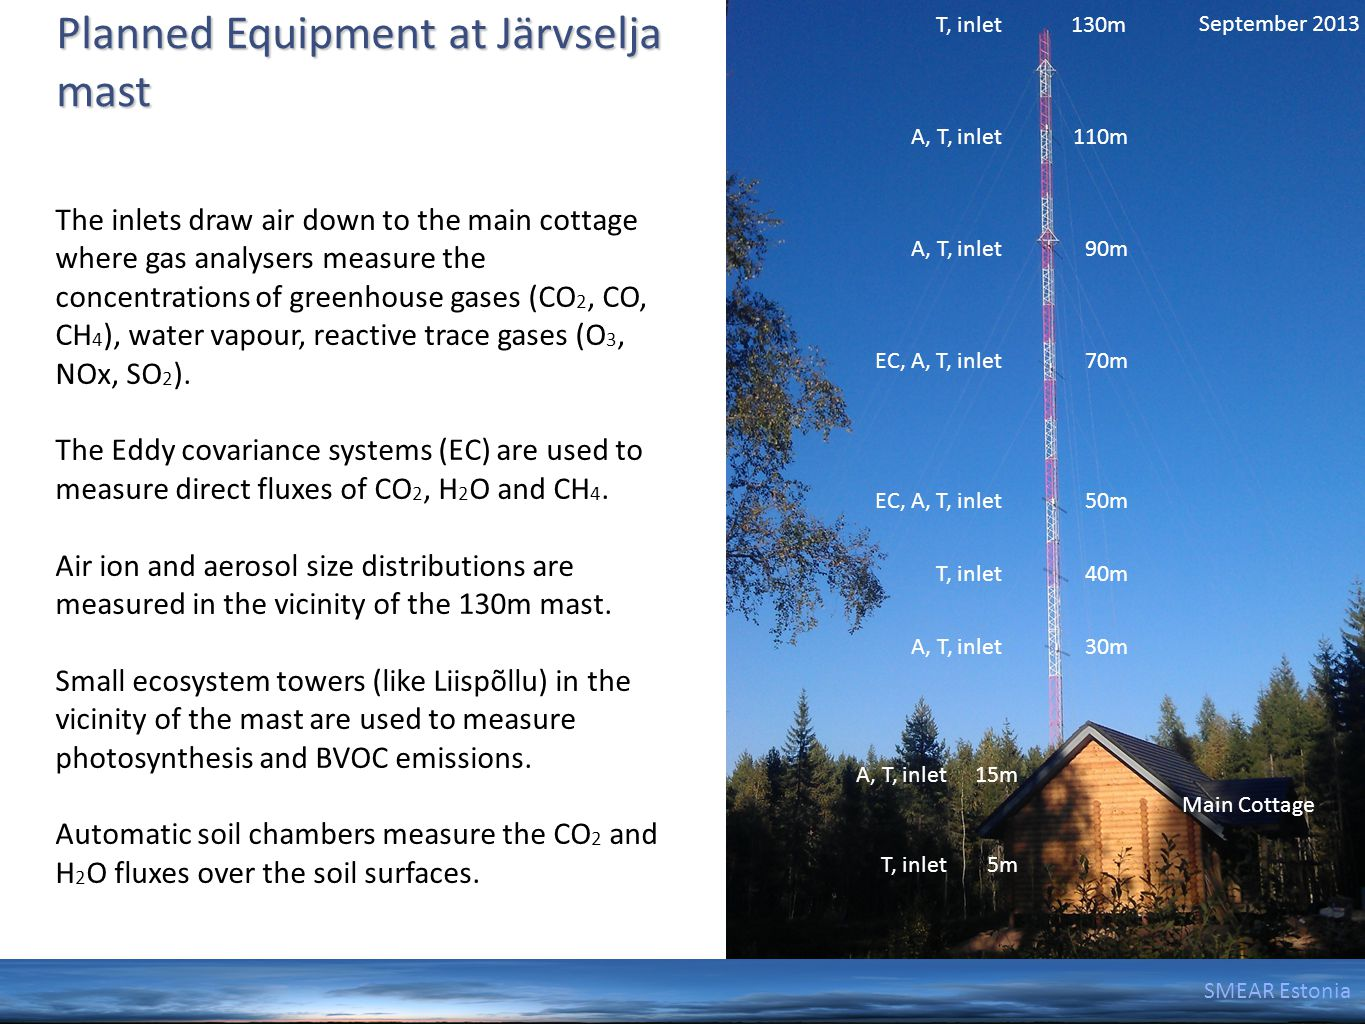 SMEAR Estonia Planned Equipment at Järvselja mast September 2013 130m 110m 90m 70m 50m 40m 30m 15m 5m Main Cottage T, inlet A, T, inlet T, inlet EC, A, T, inlet A, T, inlet T, inlet The inlets draw air down to the main cottage where gas analysers measure the concentrations of greenhouse gases (CO 2, CO, CH 4 ), water vapour, reactive trace gases (O 3, NOx, SO 2 ).